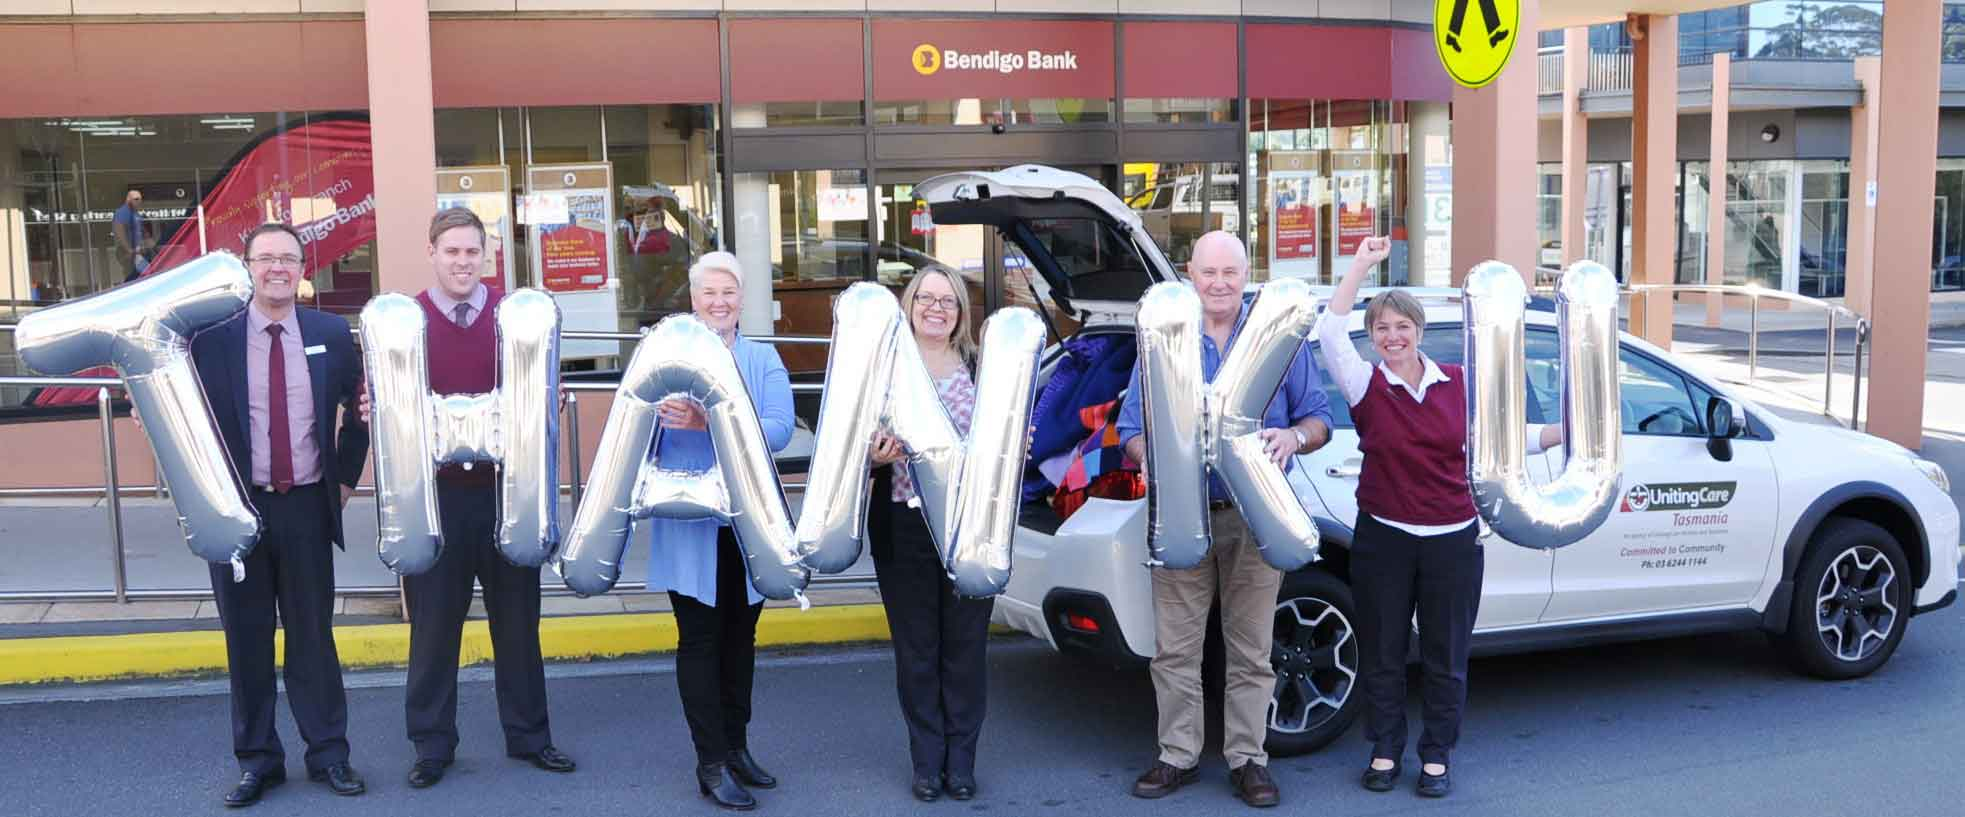 Bendigo Bank thanks UnitingCare Tasmania